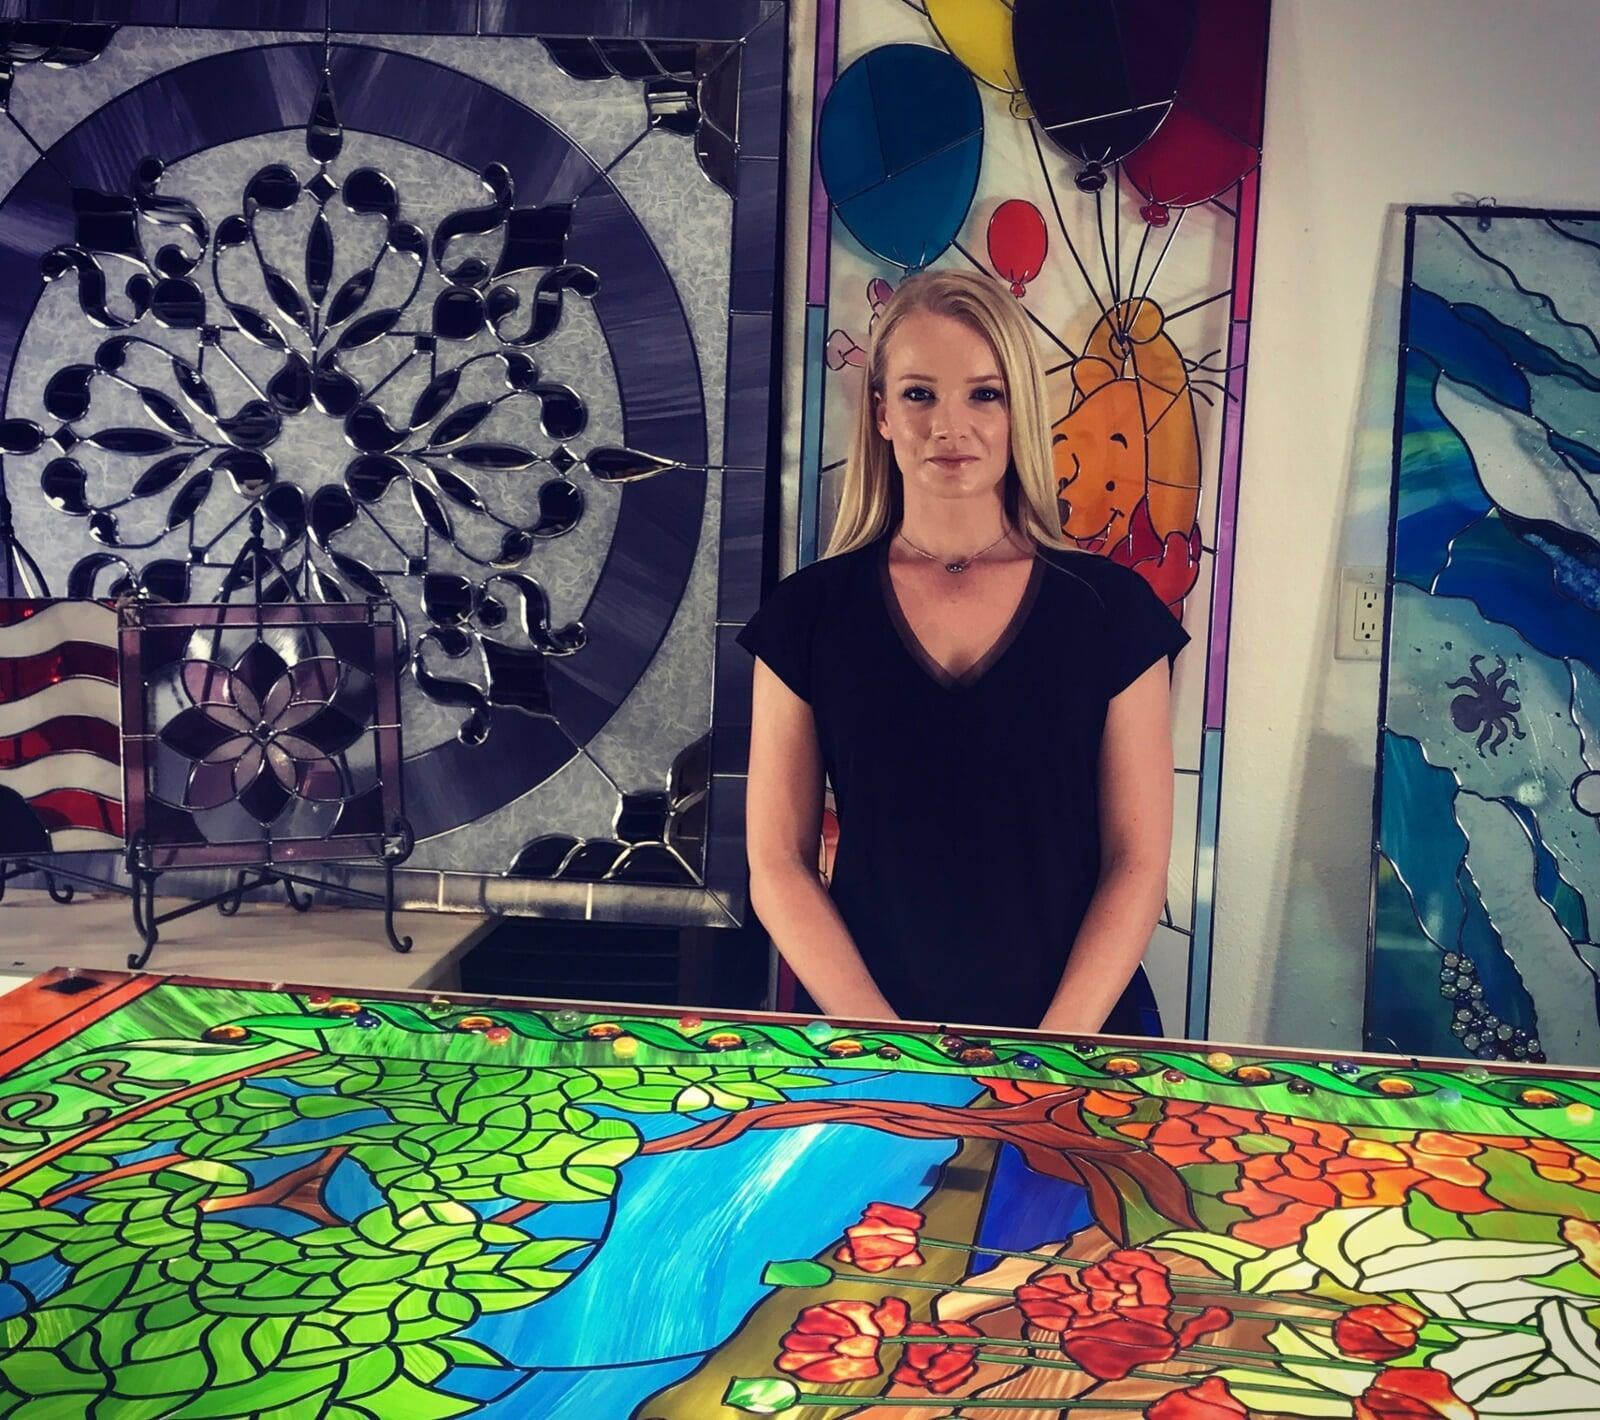 Meet the artist, Alexandra Huggins